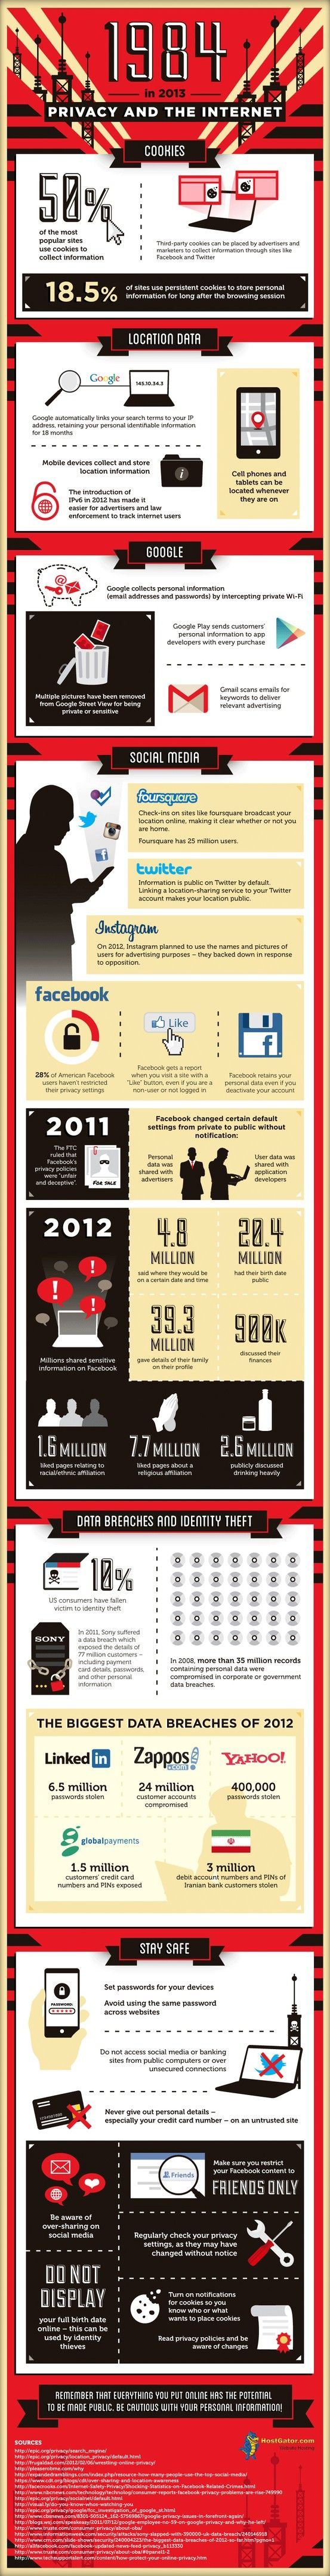 George Orwell 1984 in 2013 (privacy and the Internet) #infografia #infographic #internet